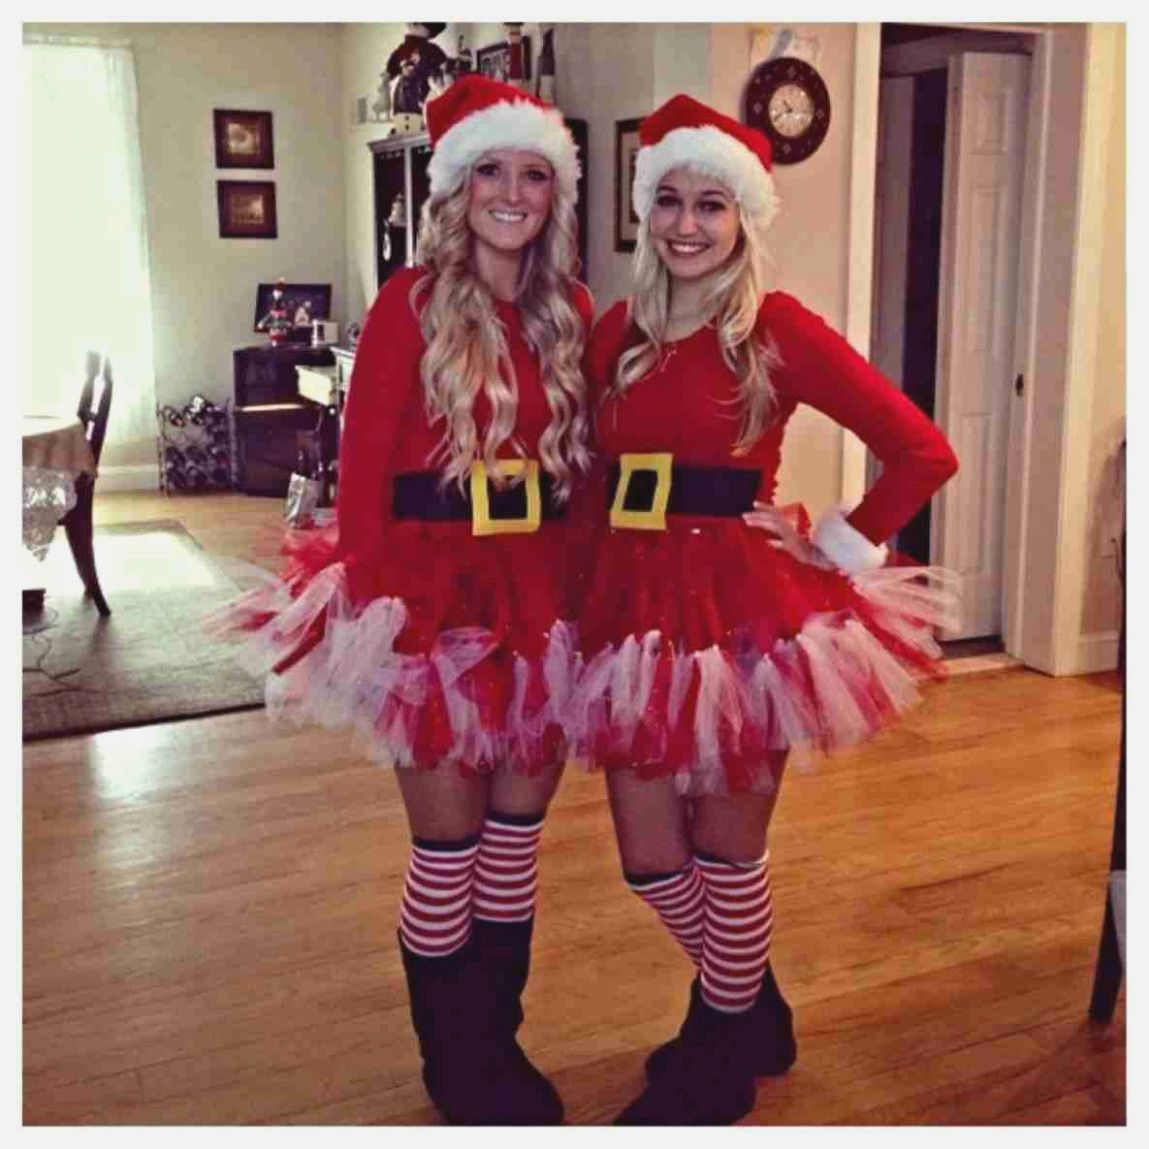 Christmas Party Dress Up Themes.Christmas Party Costume Themes Home Design In 2019